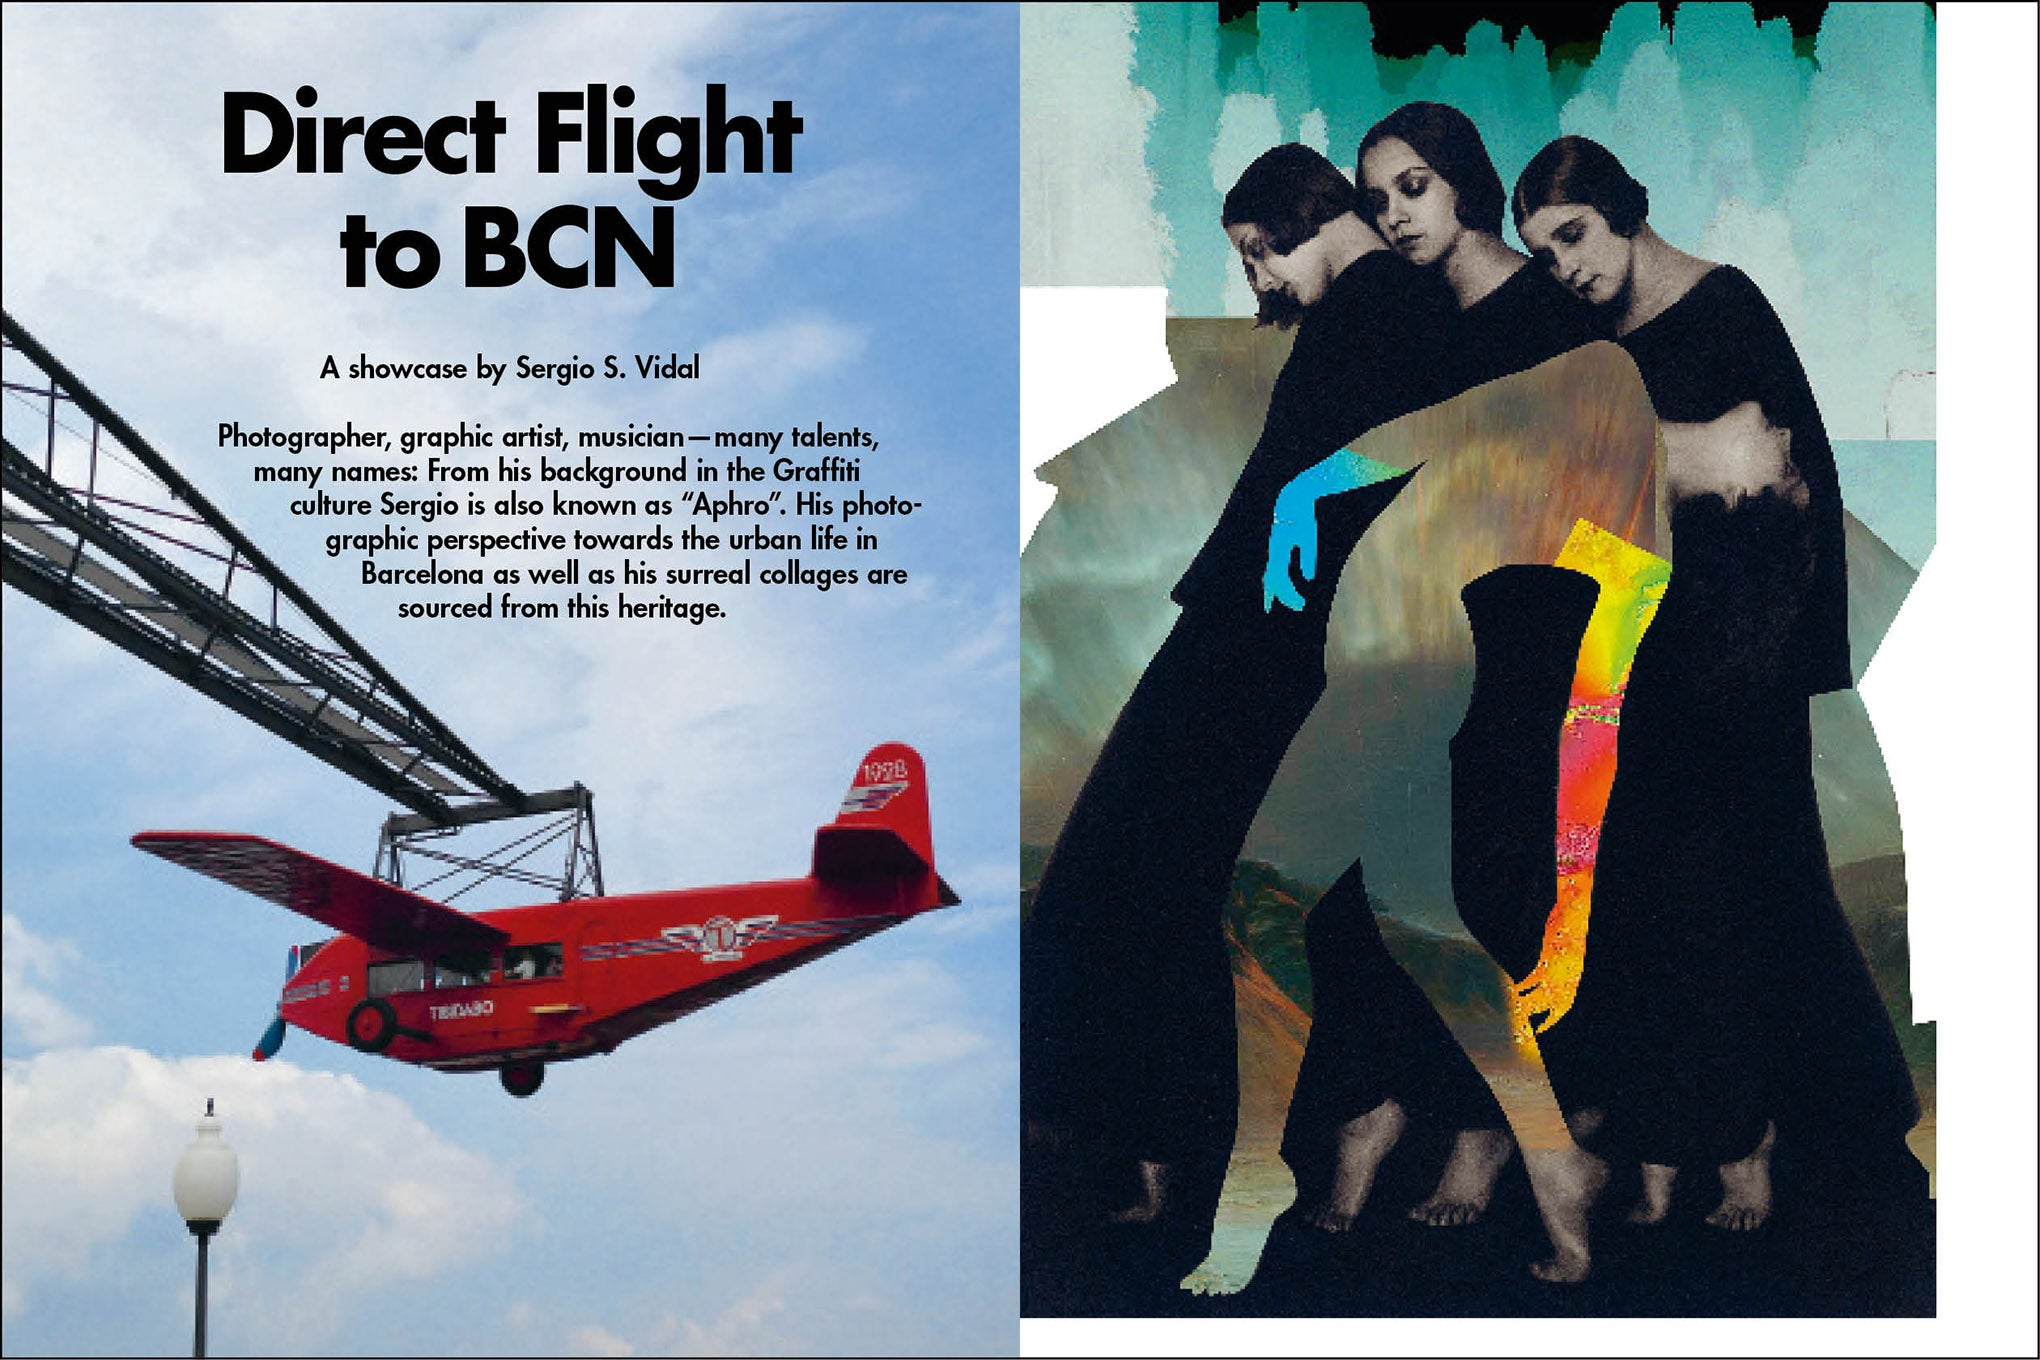 Plane in the sky, three women standing, and one woman bending backwards